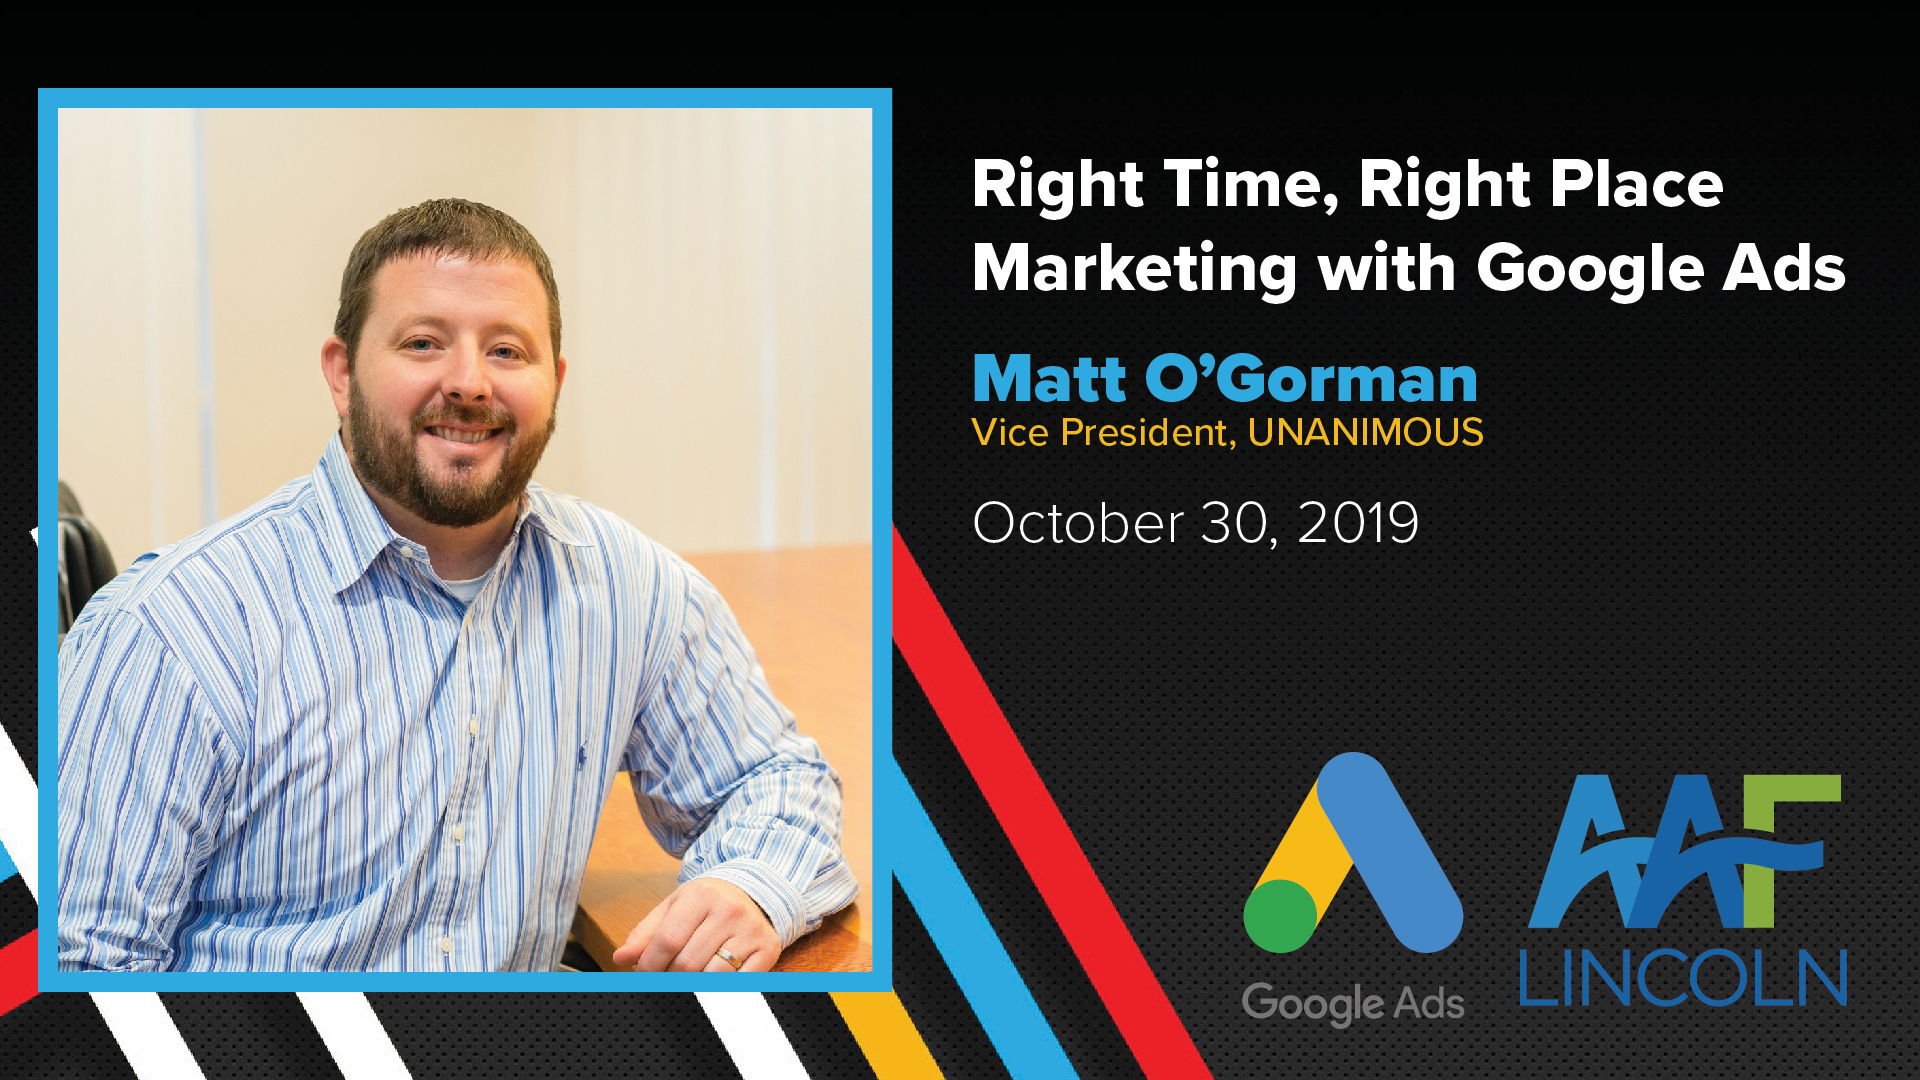 Right Time, Right Place Marketing with Google Ads